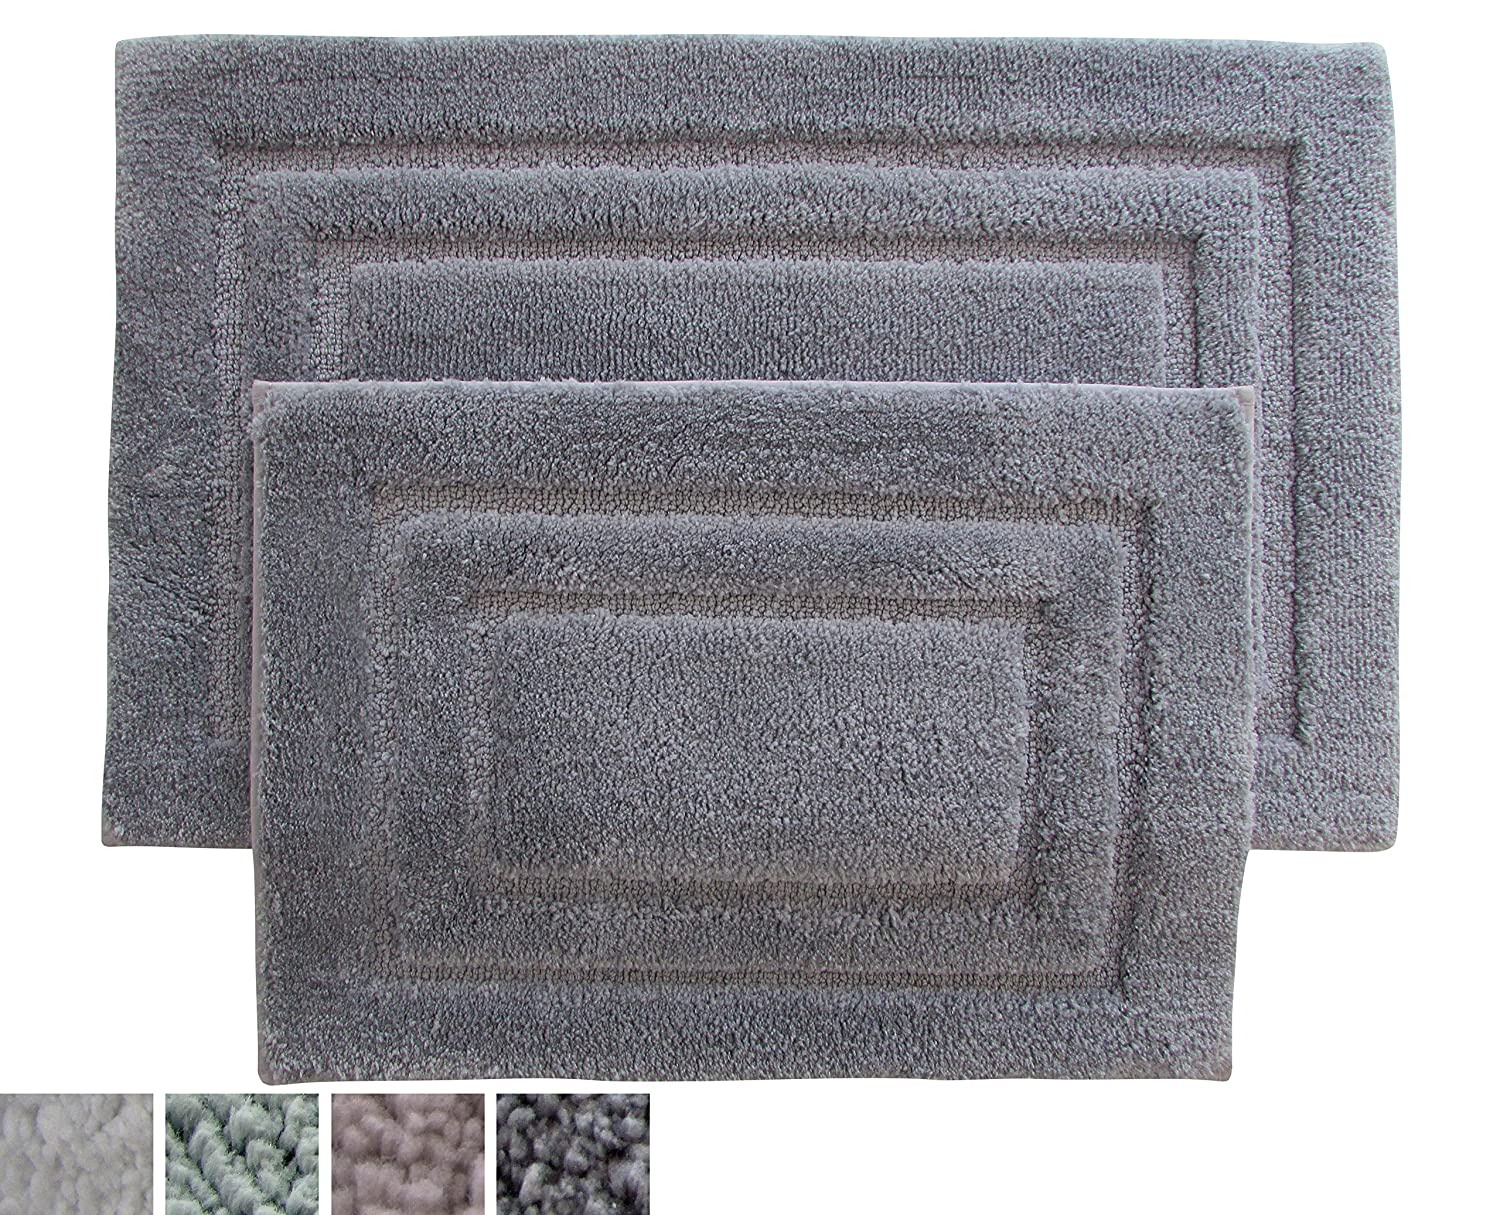 Shop Amazoncom Bath Rugs - Black chenille bath rug for bathroom decorating ideas